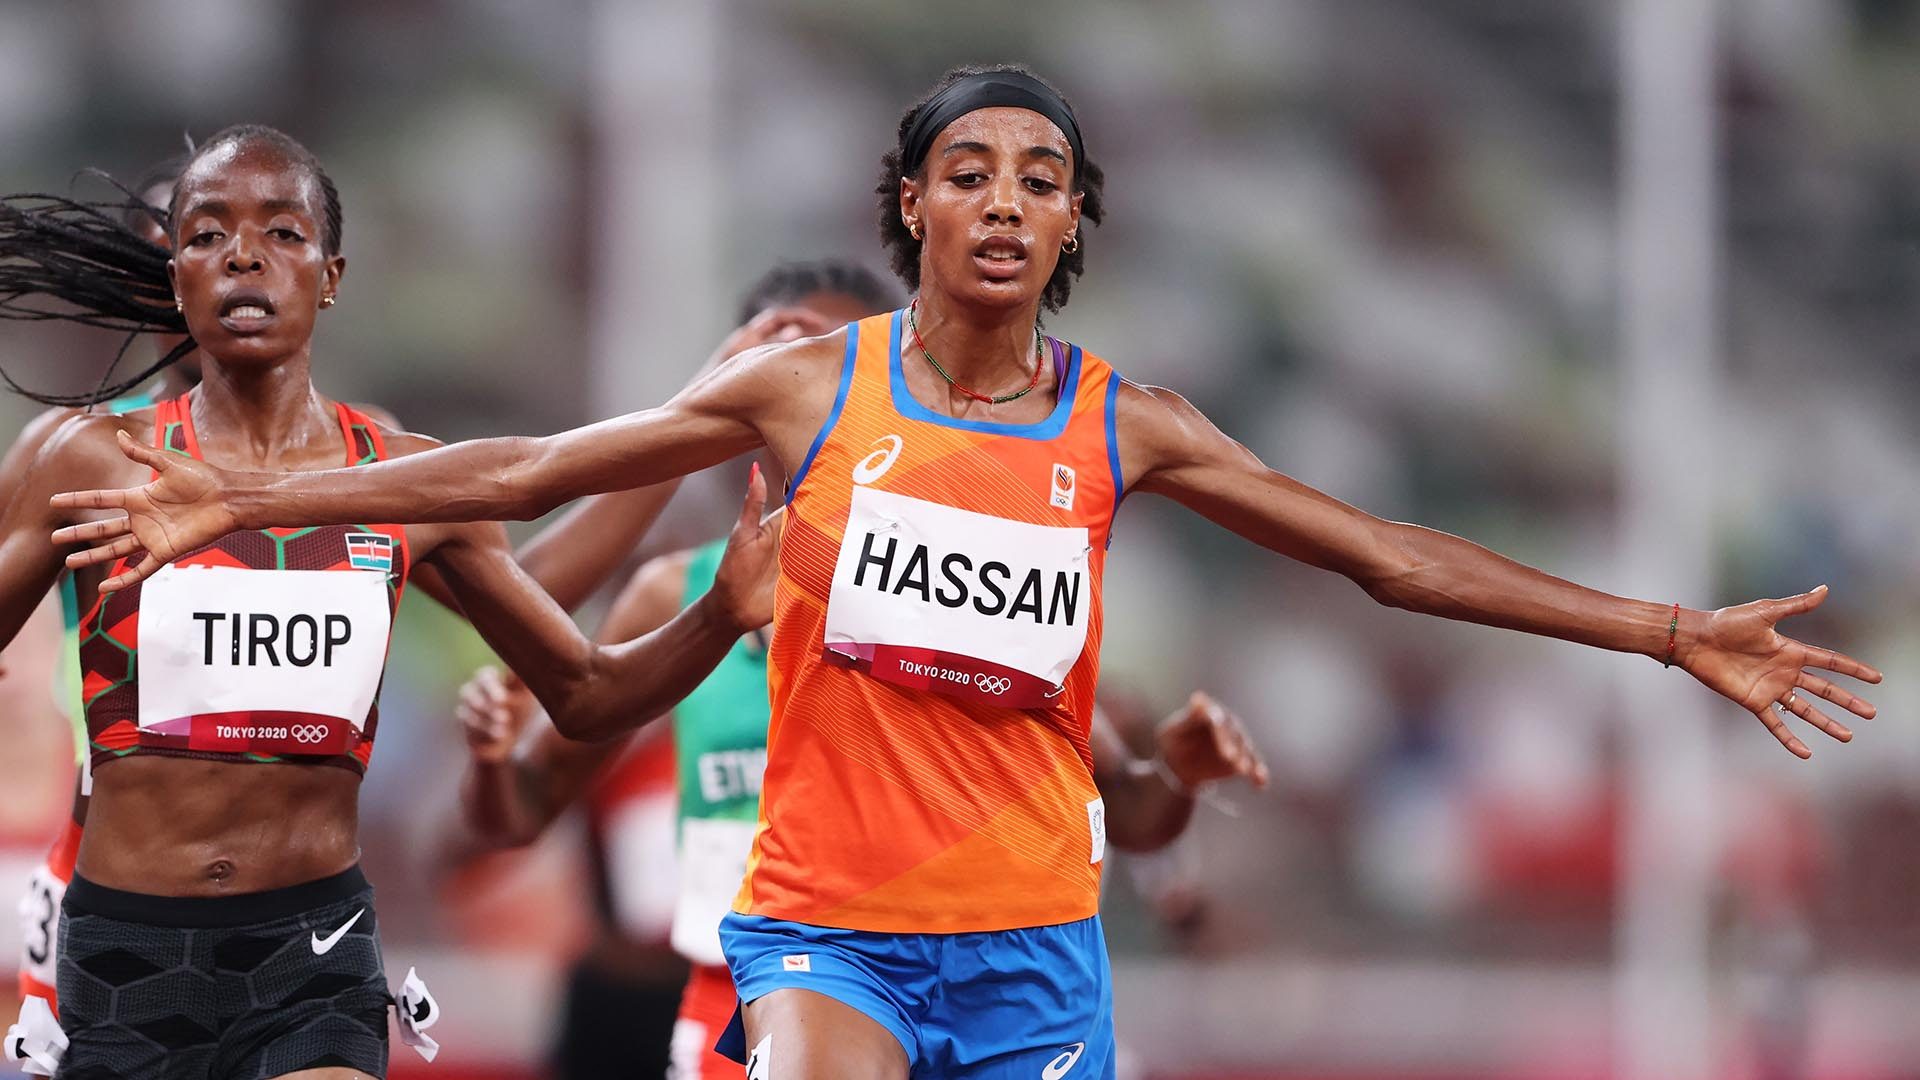 TOKYO, JAPAN - JULY 30: Sifan Hassan of Team Netherlands crosses the finish line first ahead of...